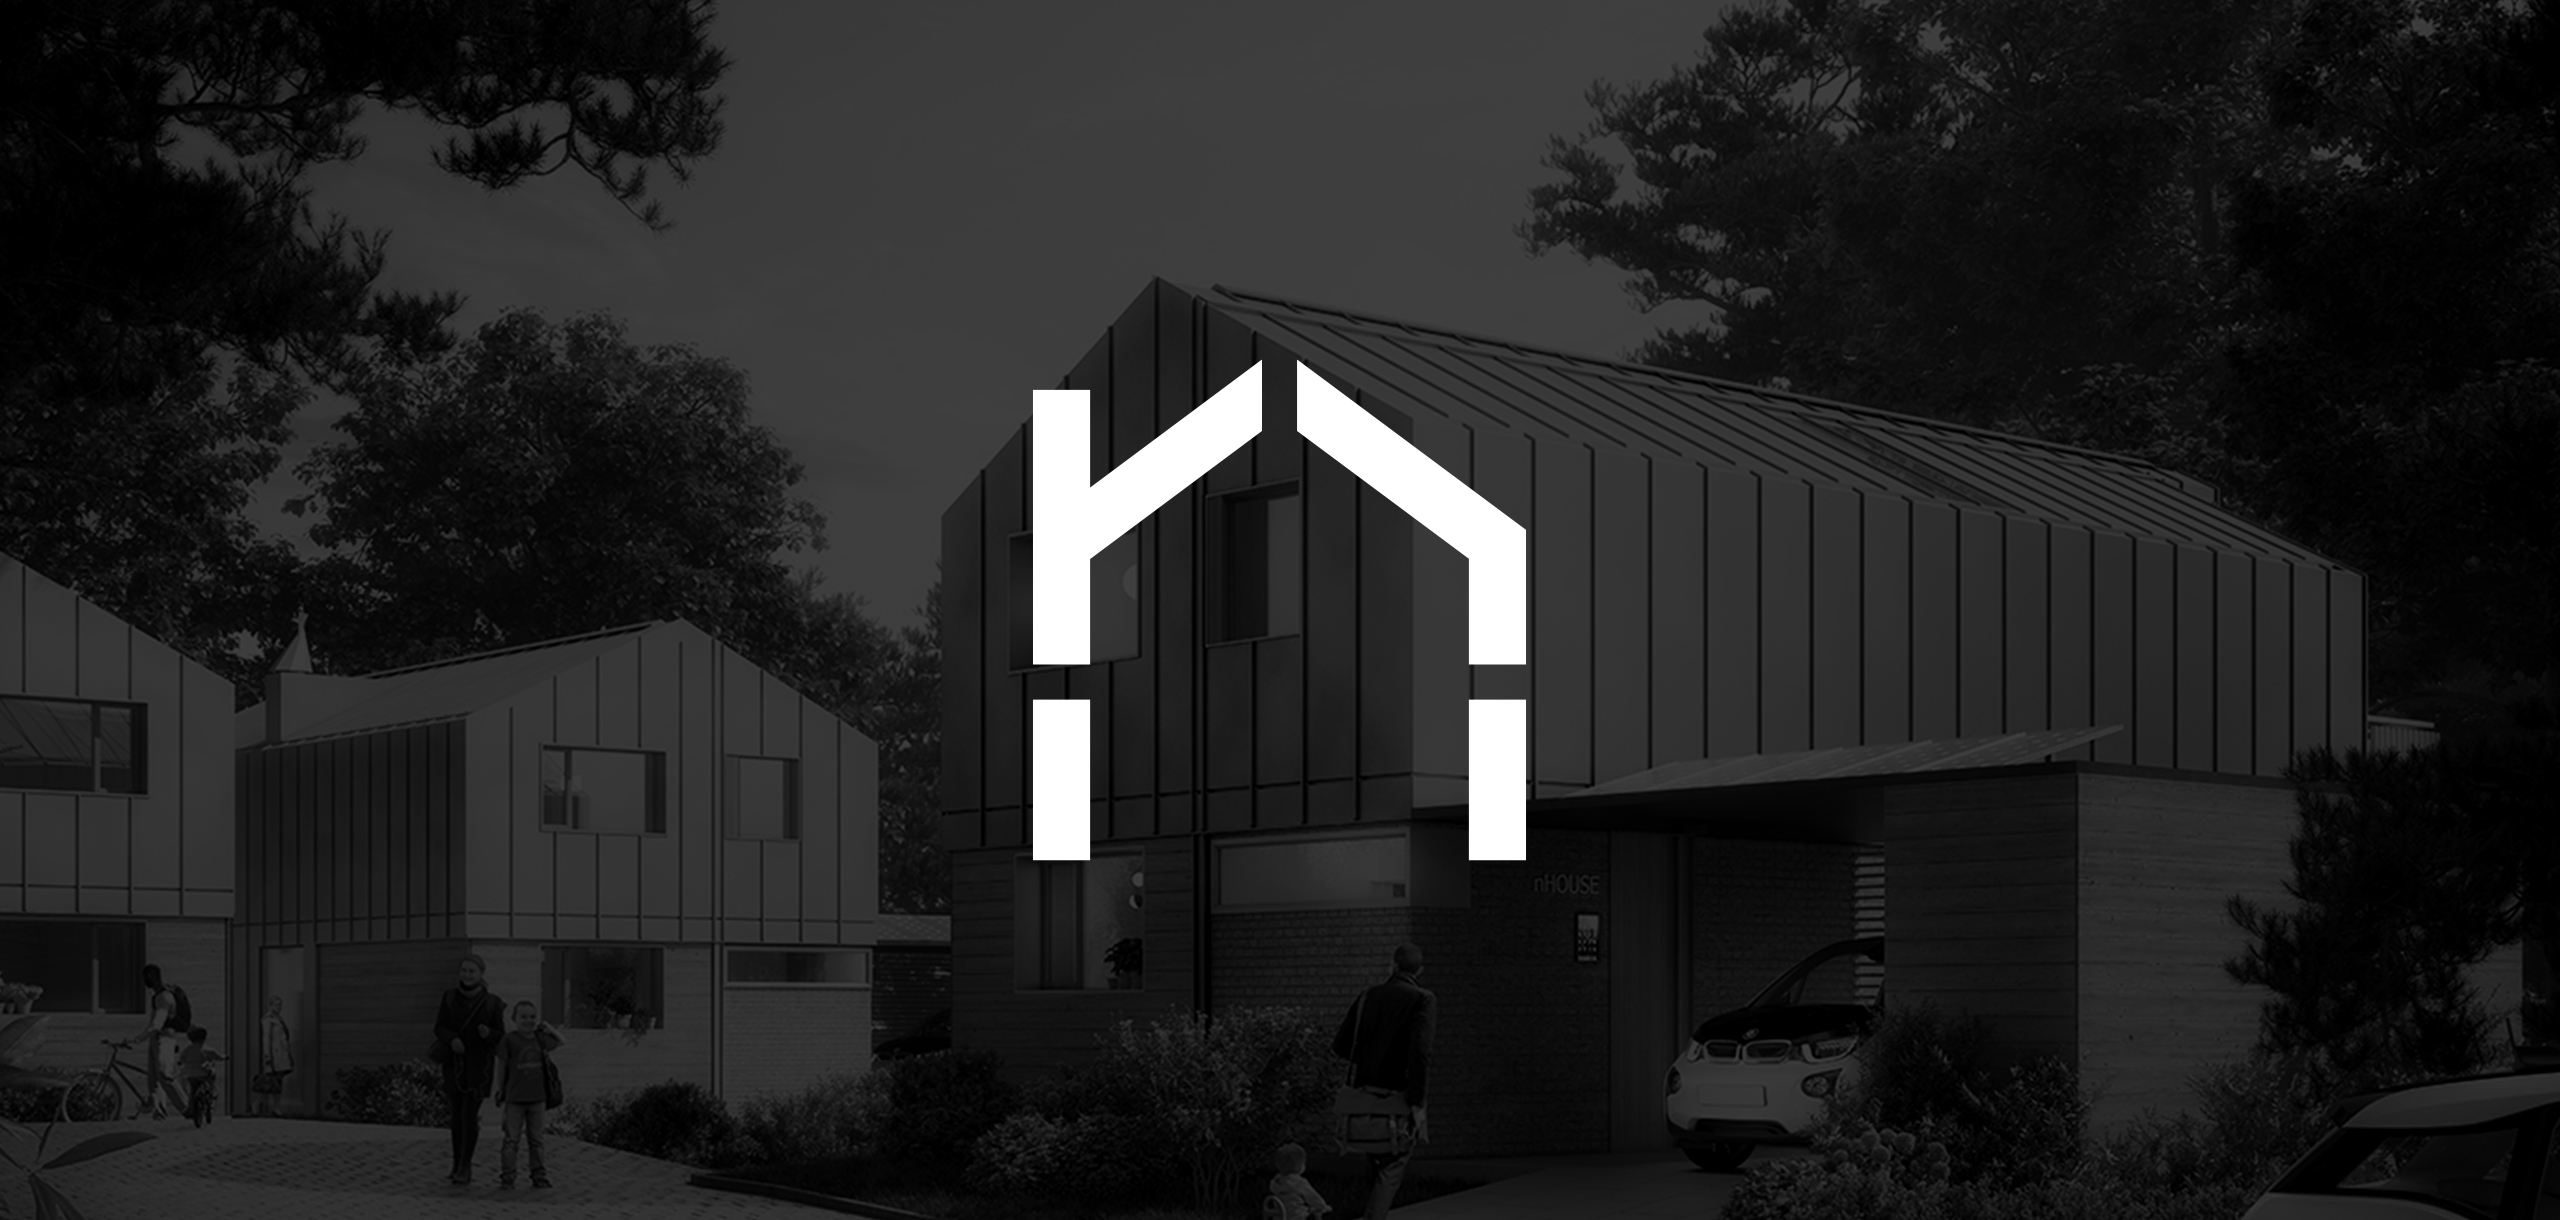 Logo design for architecture startup brand nHouse, designed by White Bear Studio